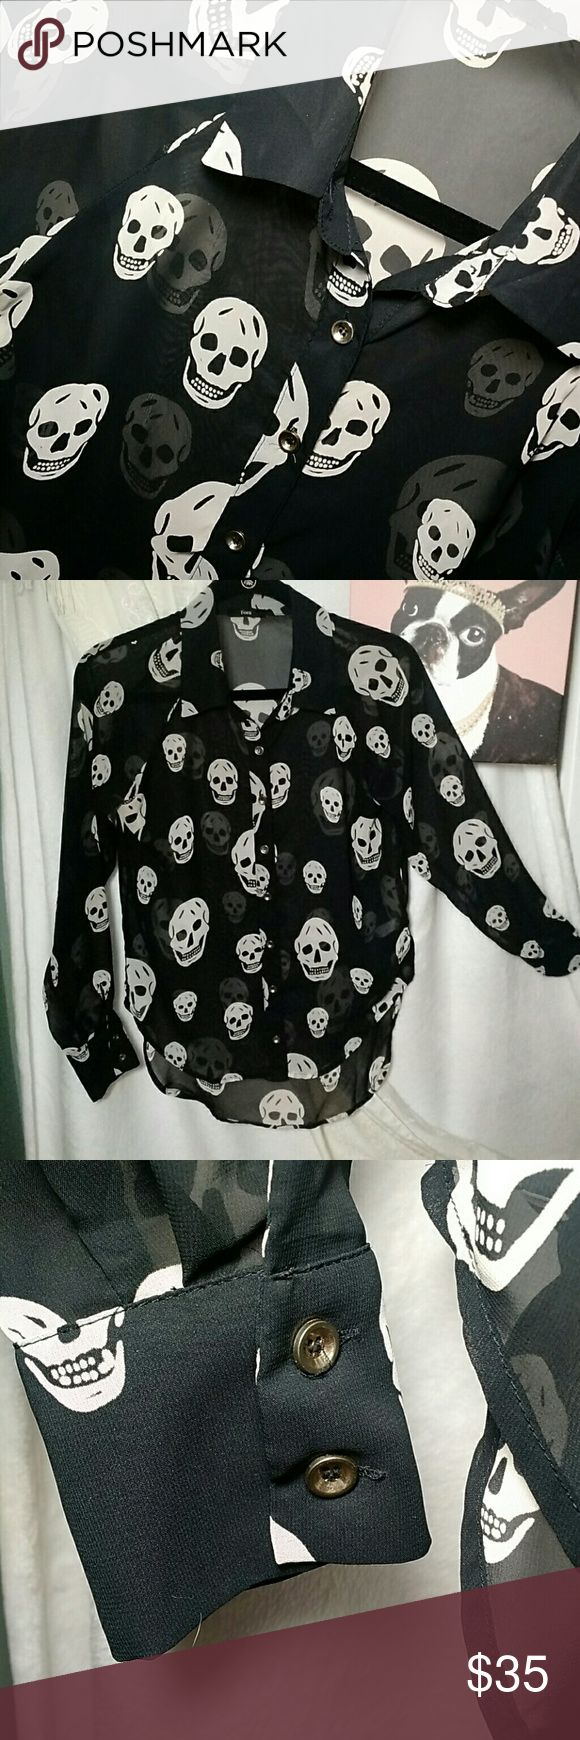 EUC!  Fora Skull Print Blouse Long sleeved button down collared blouse.  Sheer!  Skull prints front, back, and sleeves.  Buttons on sleeve cuffs.  High/low hemline.  100% polyester. Hand wash cold.  Hang or lay flat to dry.  And, yes, I had a Harley.  I rode ALONE (did not ride, well, you know...). Gonna get it back once my sons are out of college! FORA Tops Blouses